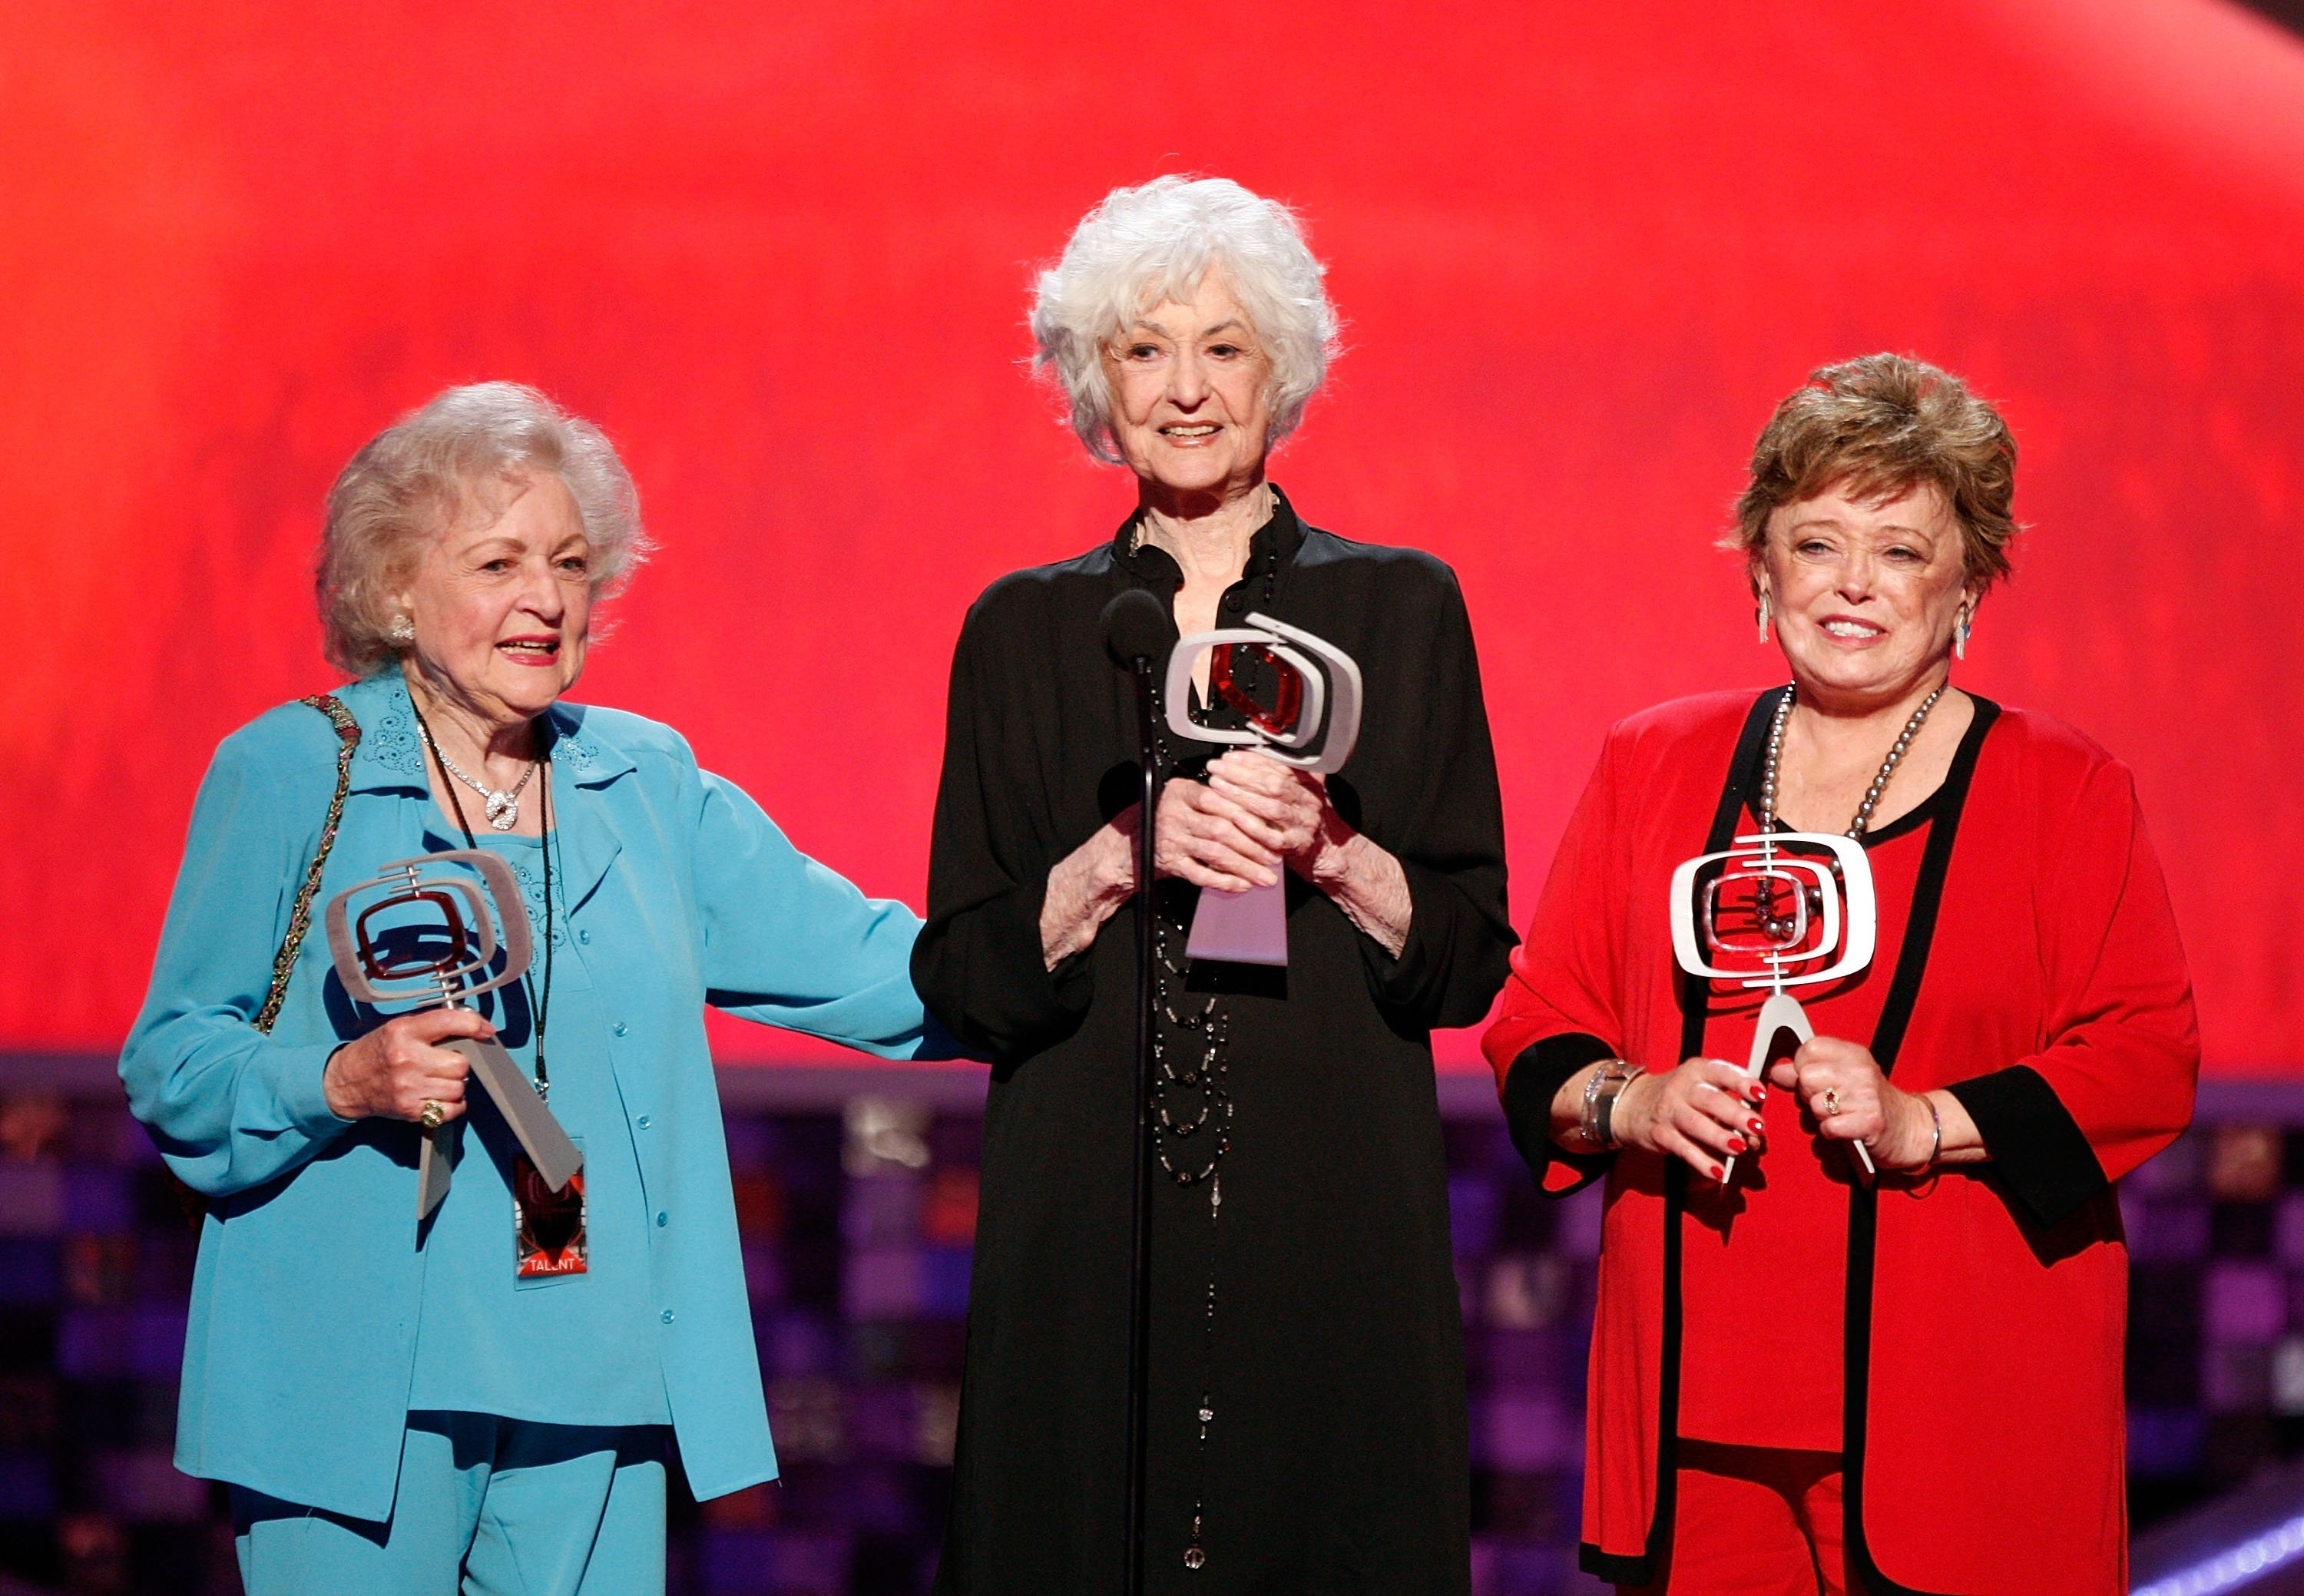 """Betty White and her """"Golden Girls"""" co-stars Bea Arthur and Rue McClanahan. I Image: Getty Images."""